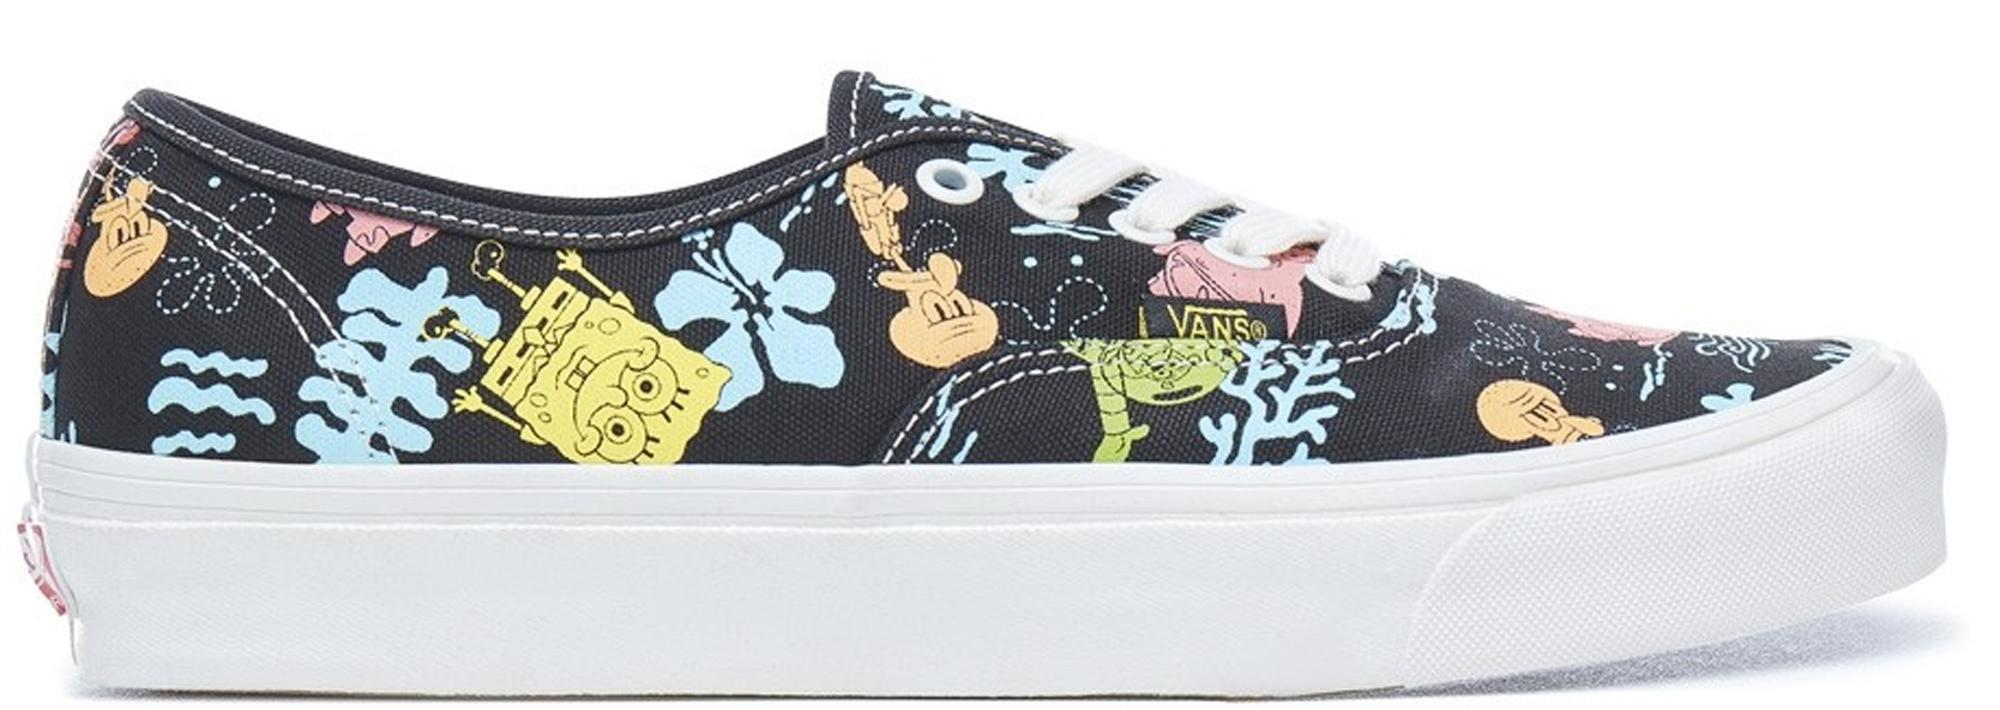 71ac8fb2efa34d Vans - Authentic Spongebob Aloha Blue for Men - Lyst. View fullscreen